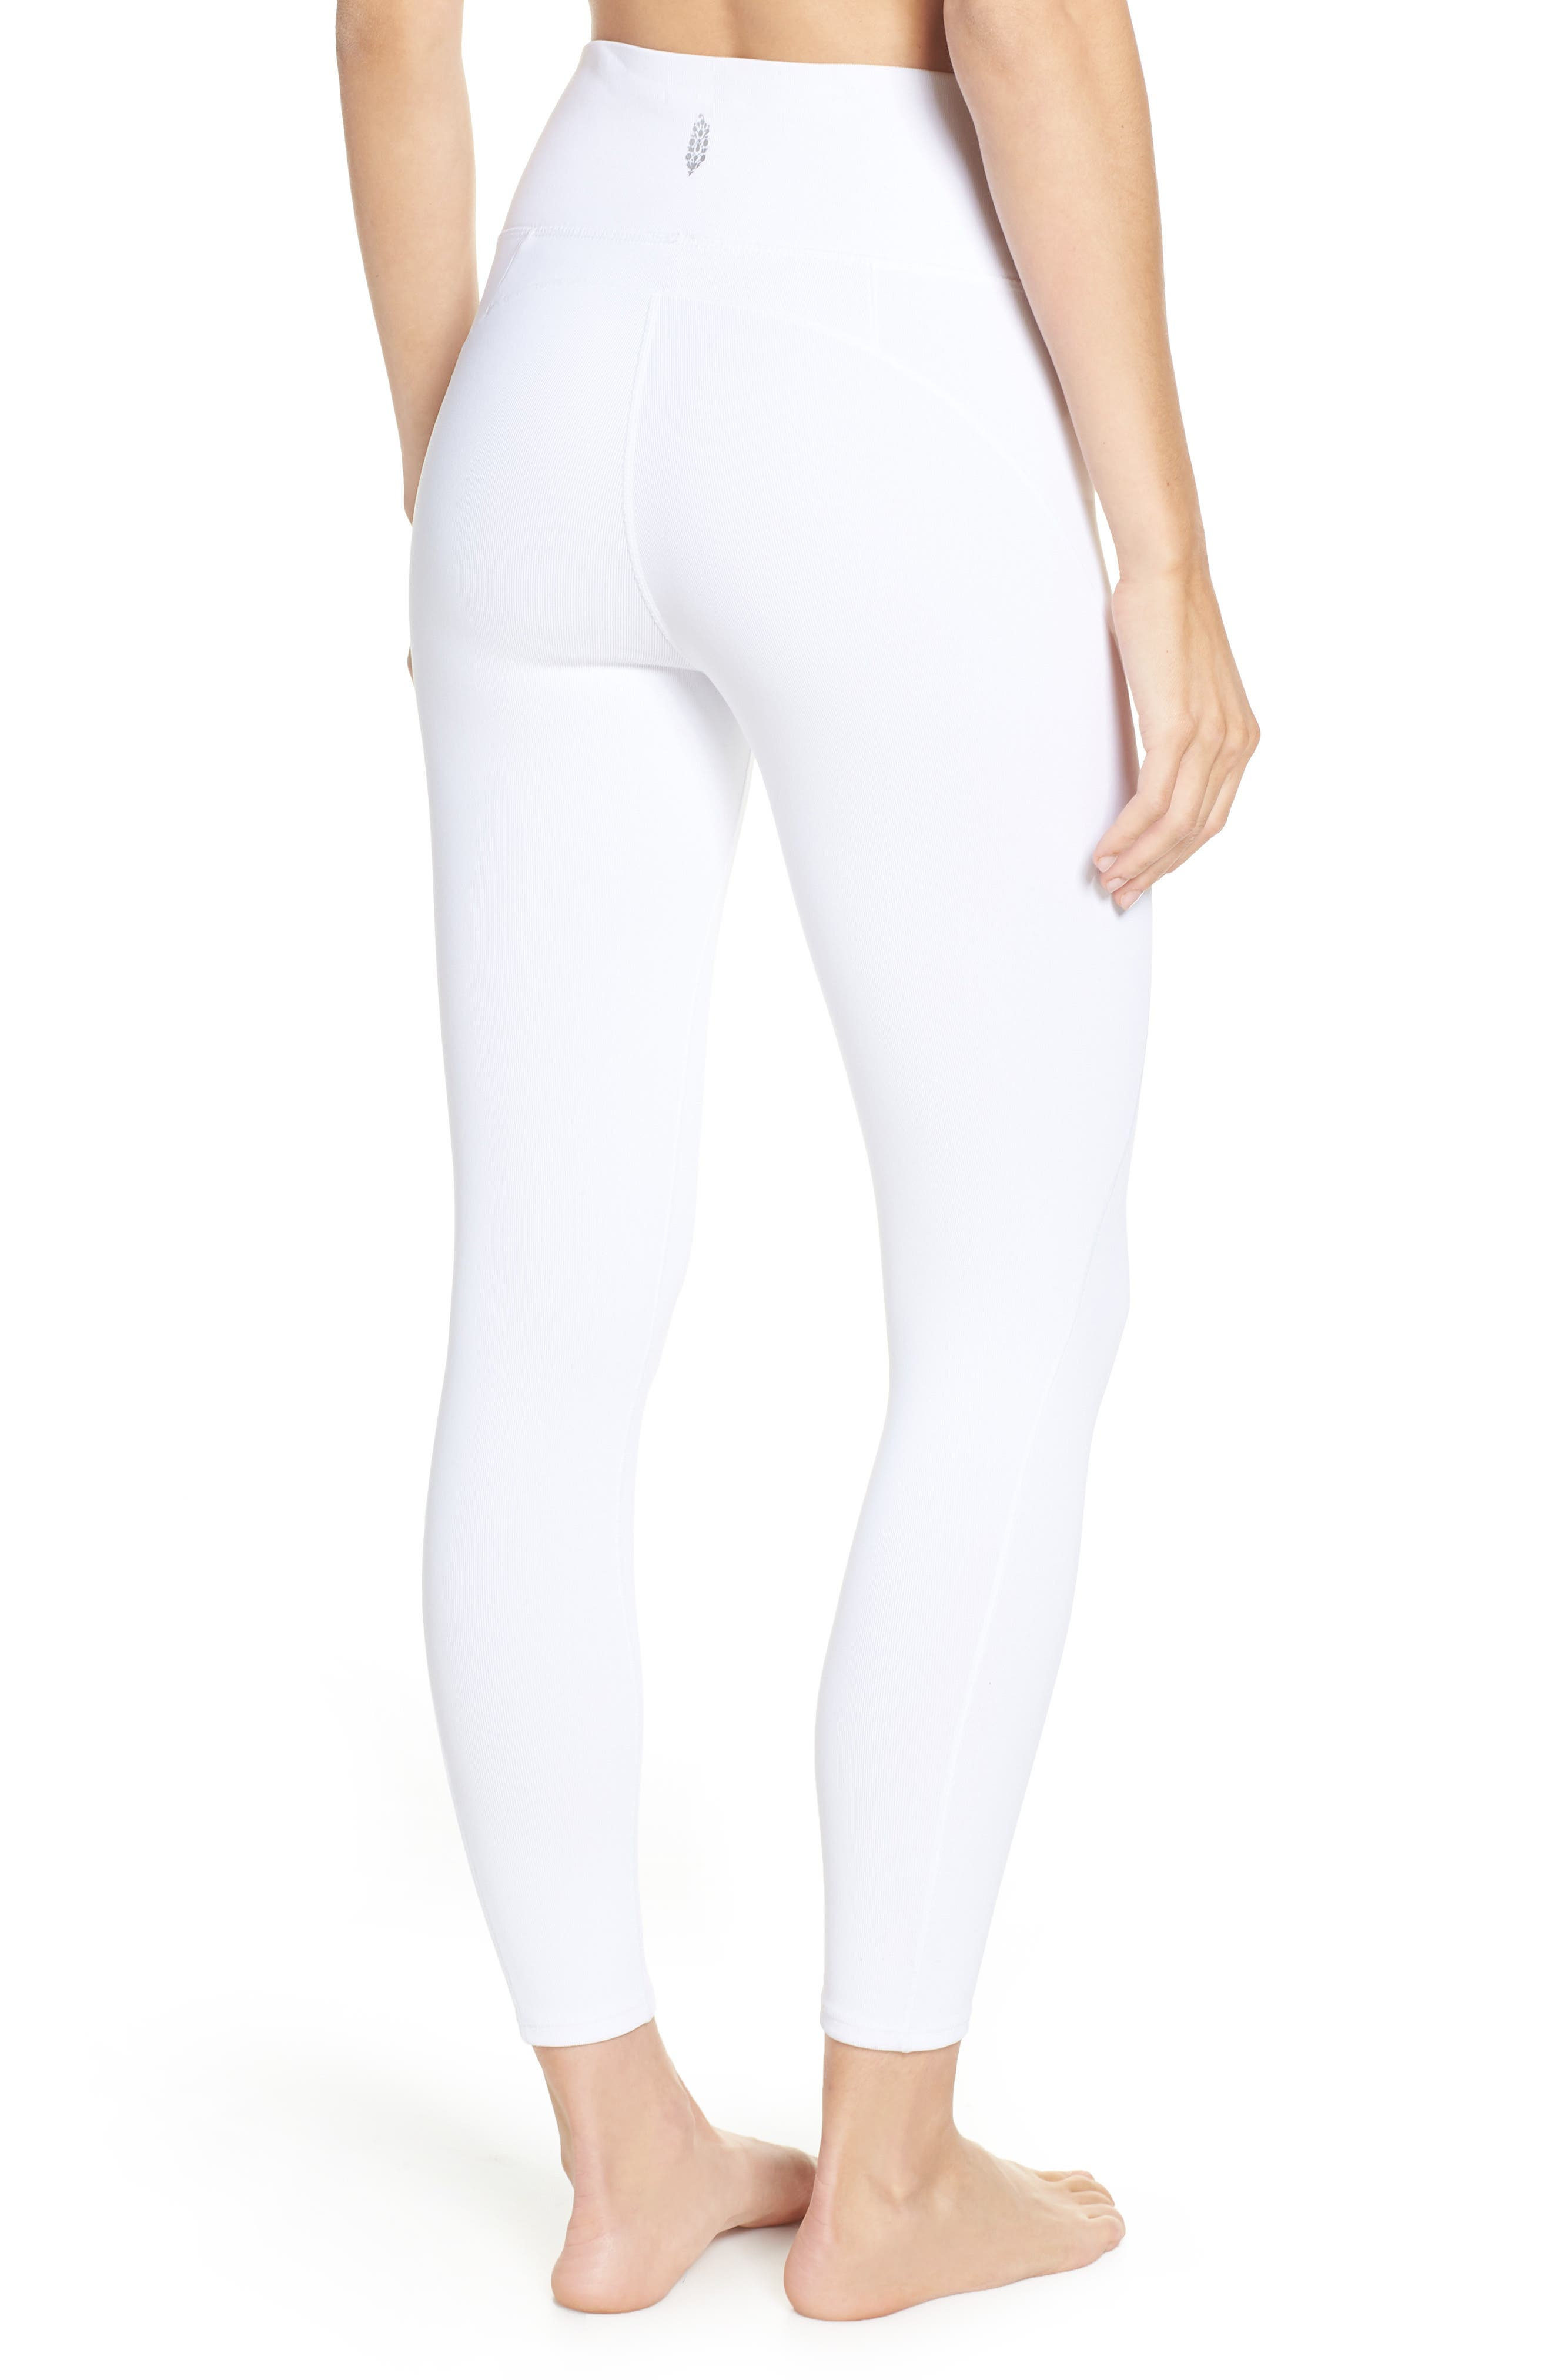 Free People FP Movement Formation High Waist Ankle Leggings,                             Alternate thumbnail 2, color,                             WHITE